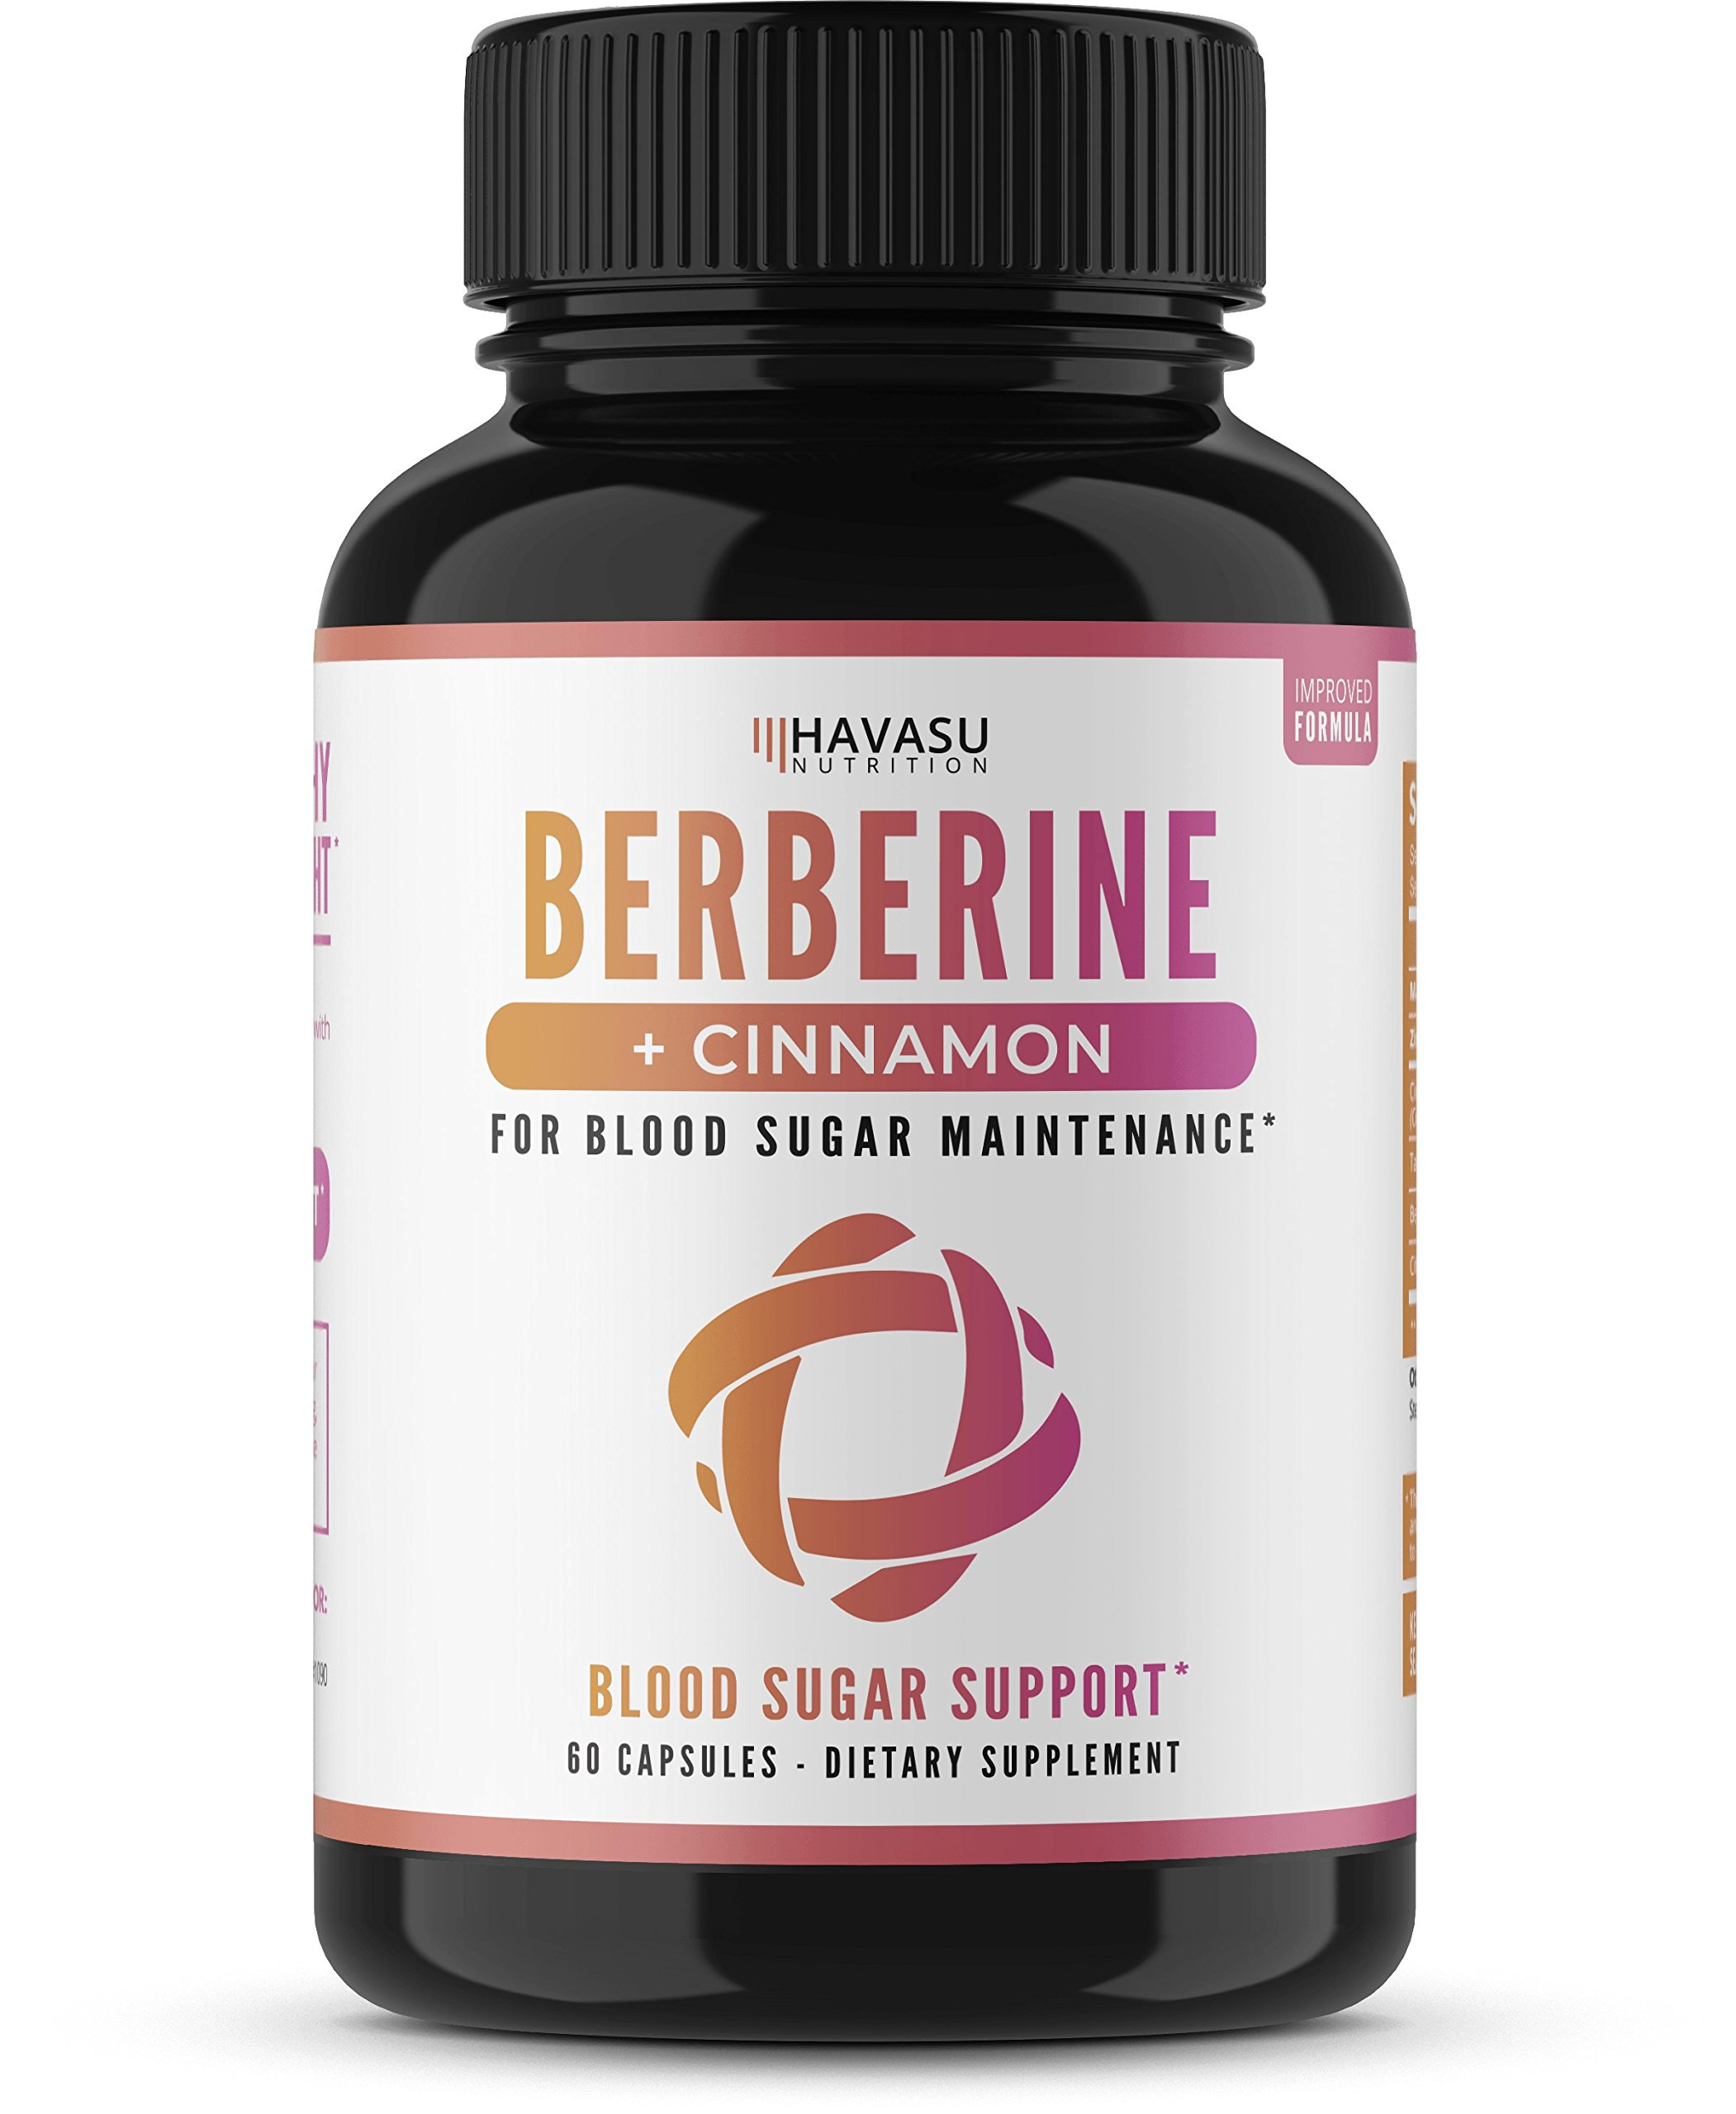 Premium Berberine + Cinnamon - Supports Healthy Blood Sugar Levels, Insulin Metabolism & Immune Function, Promotes Glucose Metabolism